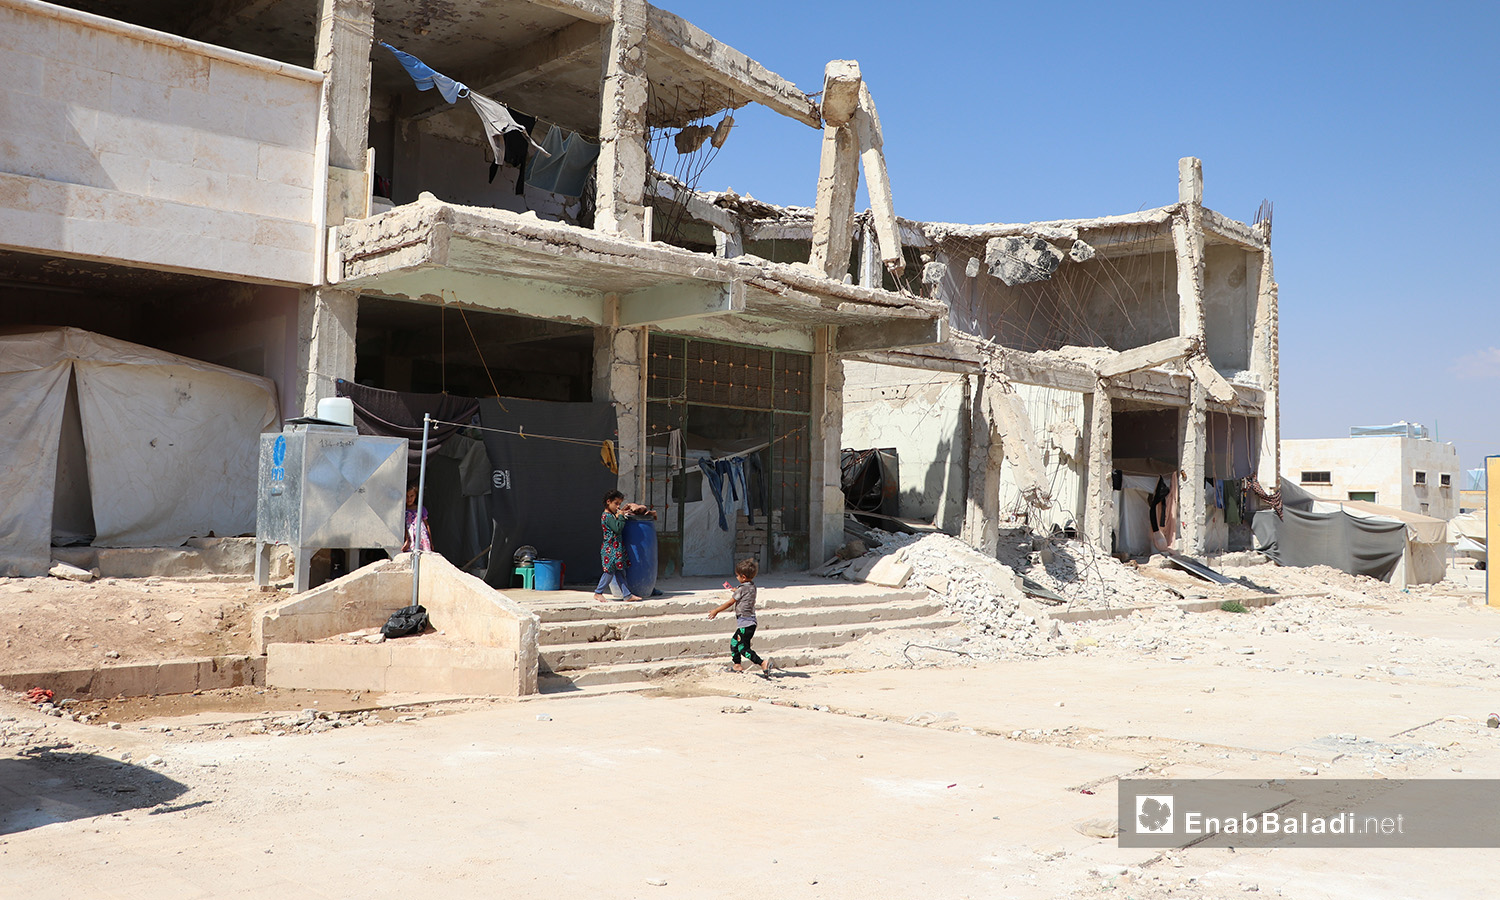 A displaced family found a shelter in a demolished building in the camp of Qibtan, near the town of Akhtarian in the northern countryside of Aleppo- 17 July 2020 (Enab Baladi- Assim al-Mulhem)